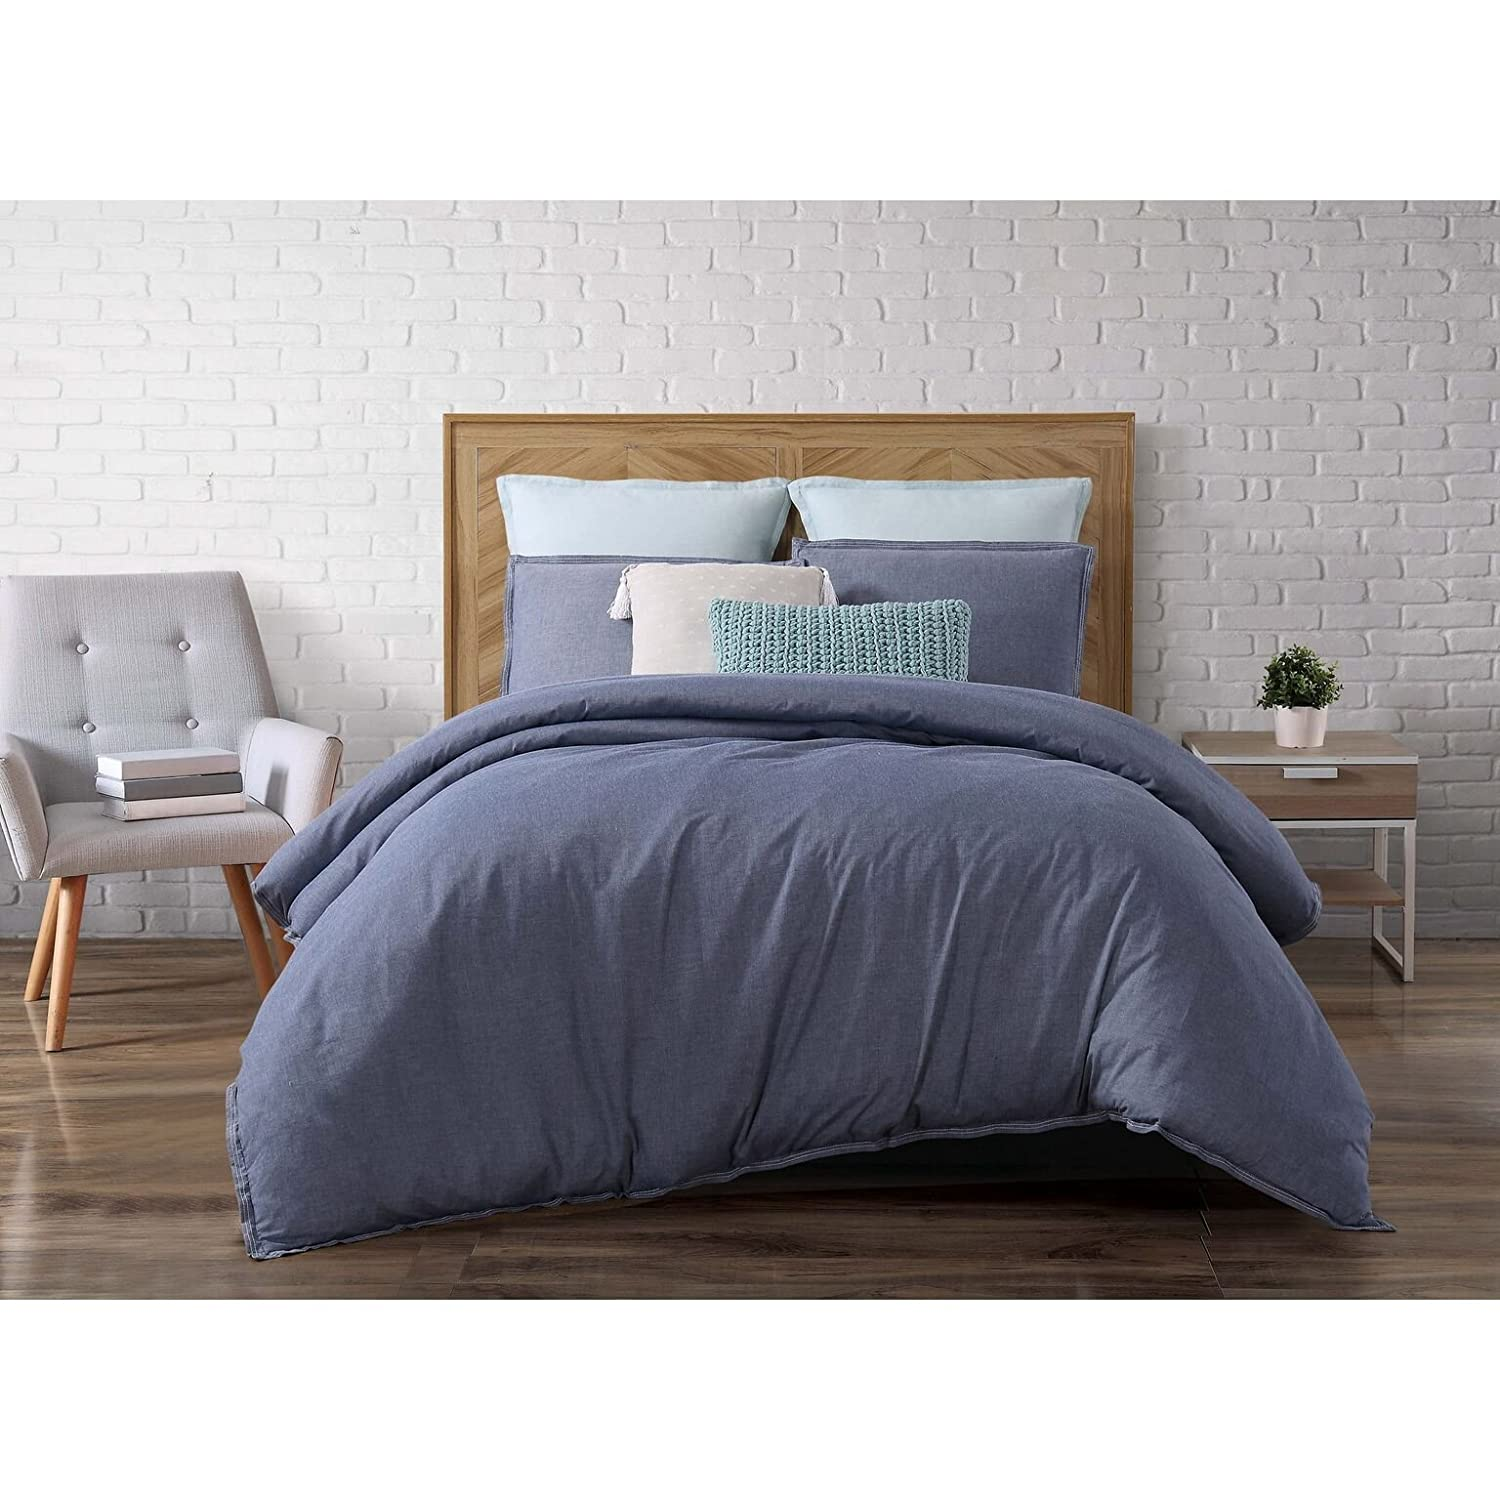 and kitchen dp chambray reversible home amazon cotton check woven co duvet uk cover set double striped blue jakarta cream